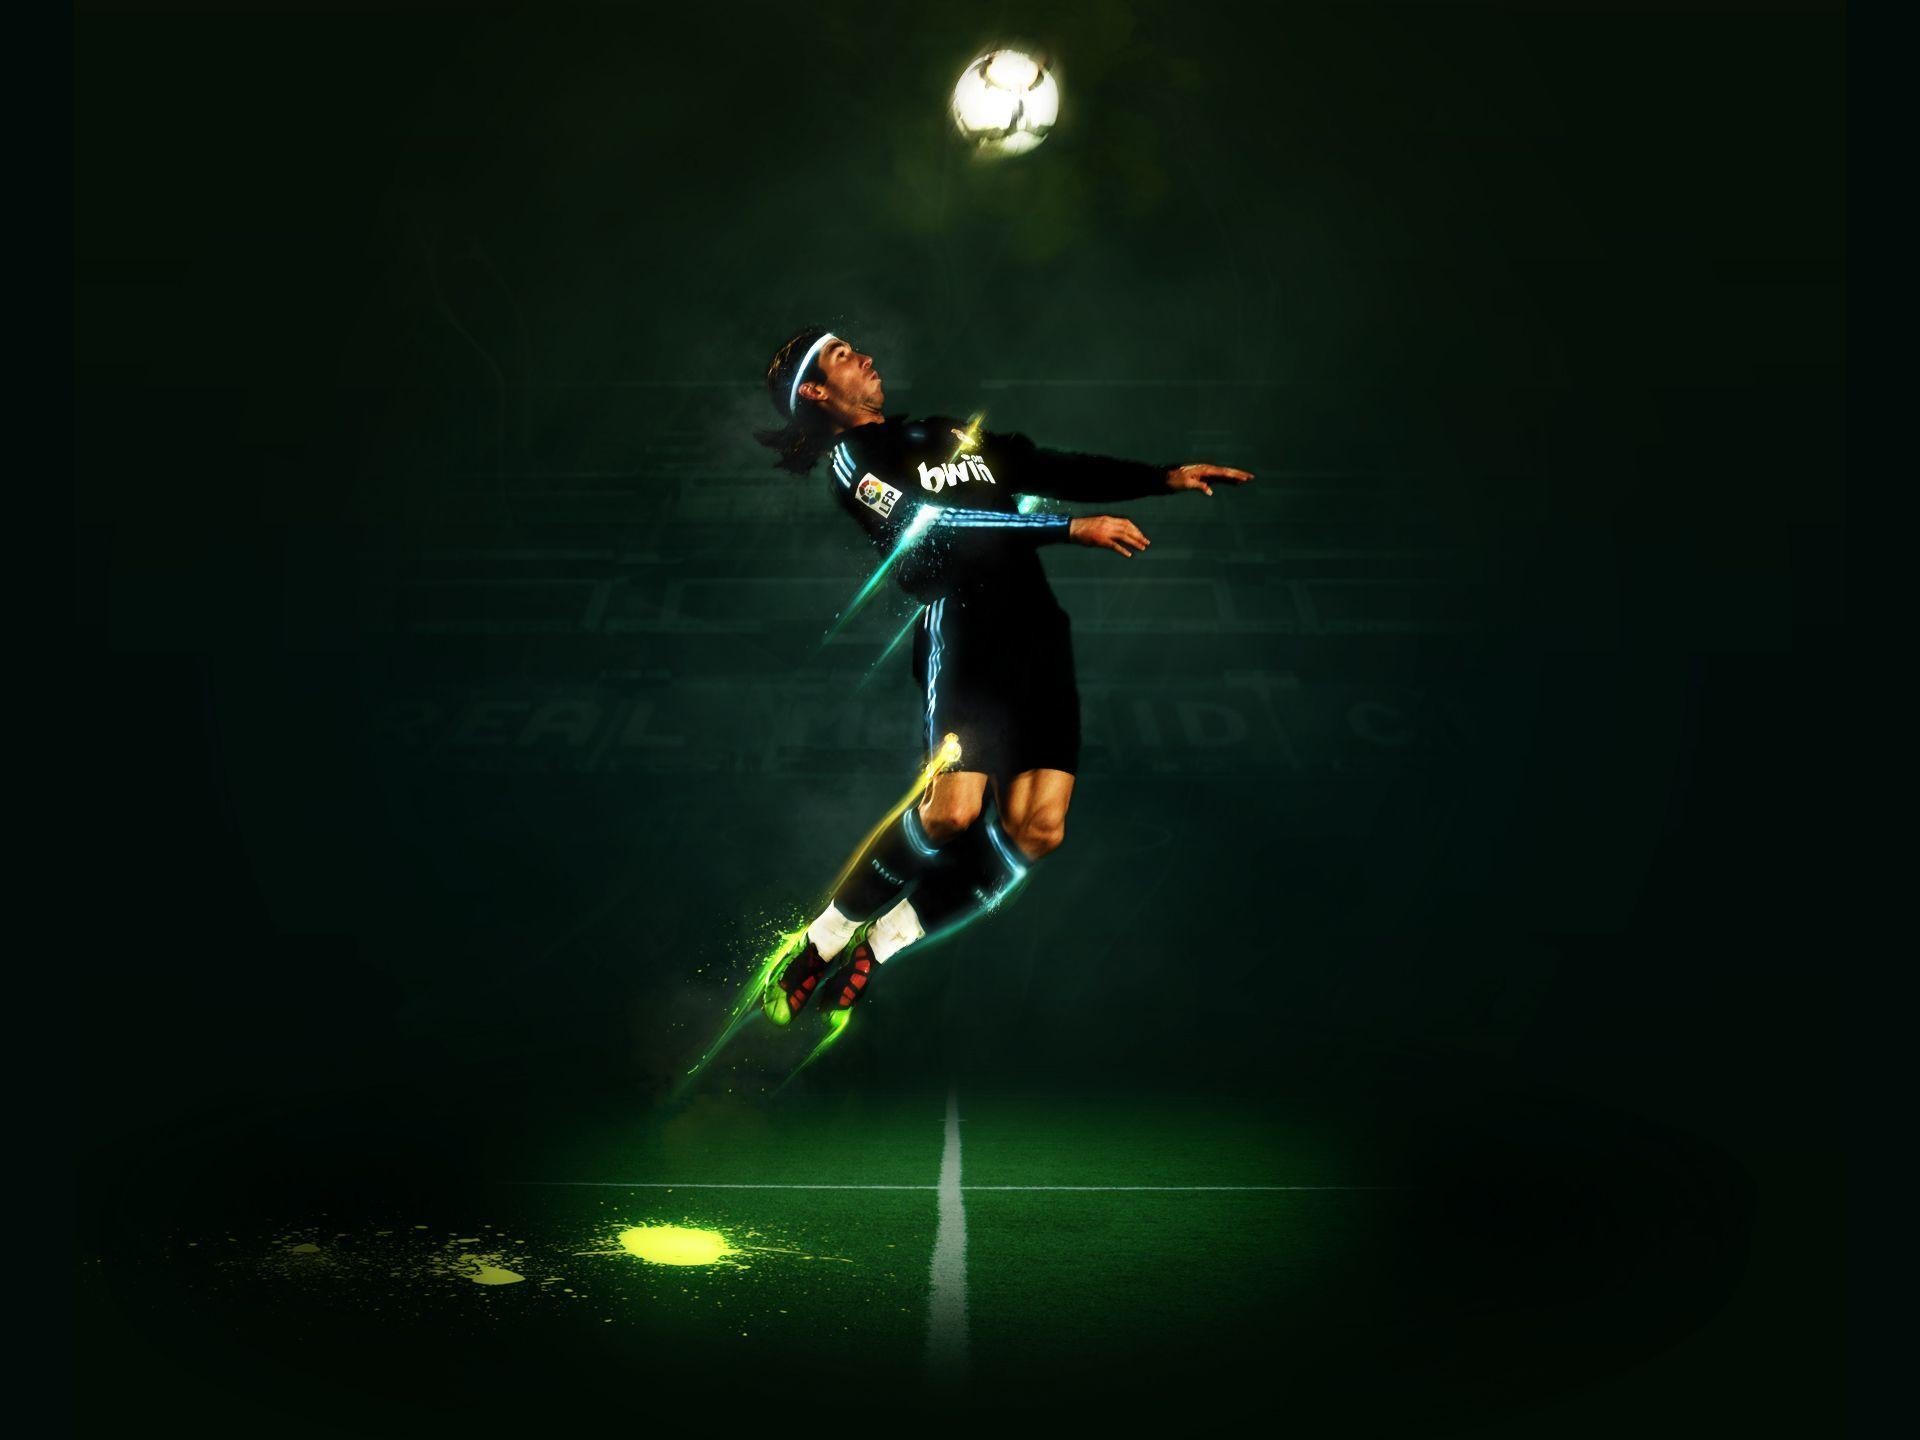 Wallpapers For > Soccer Backgrounds For Computer